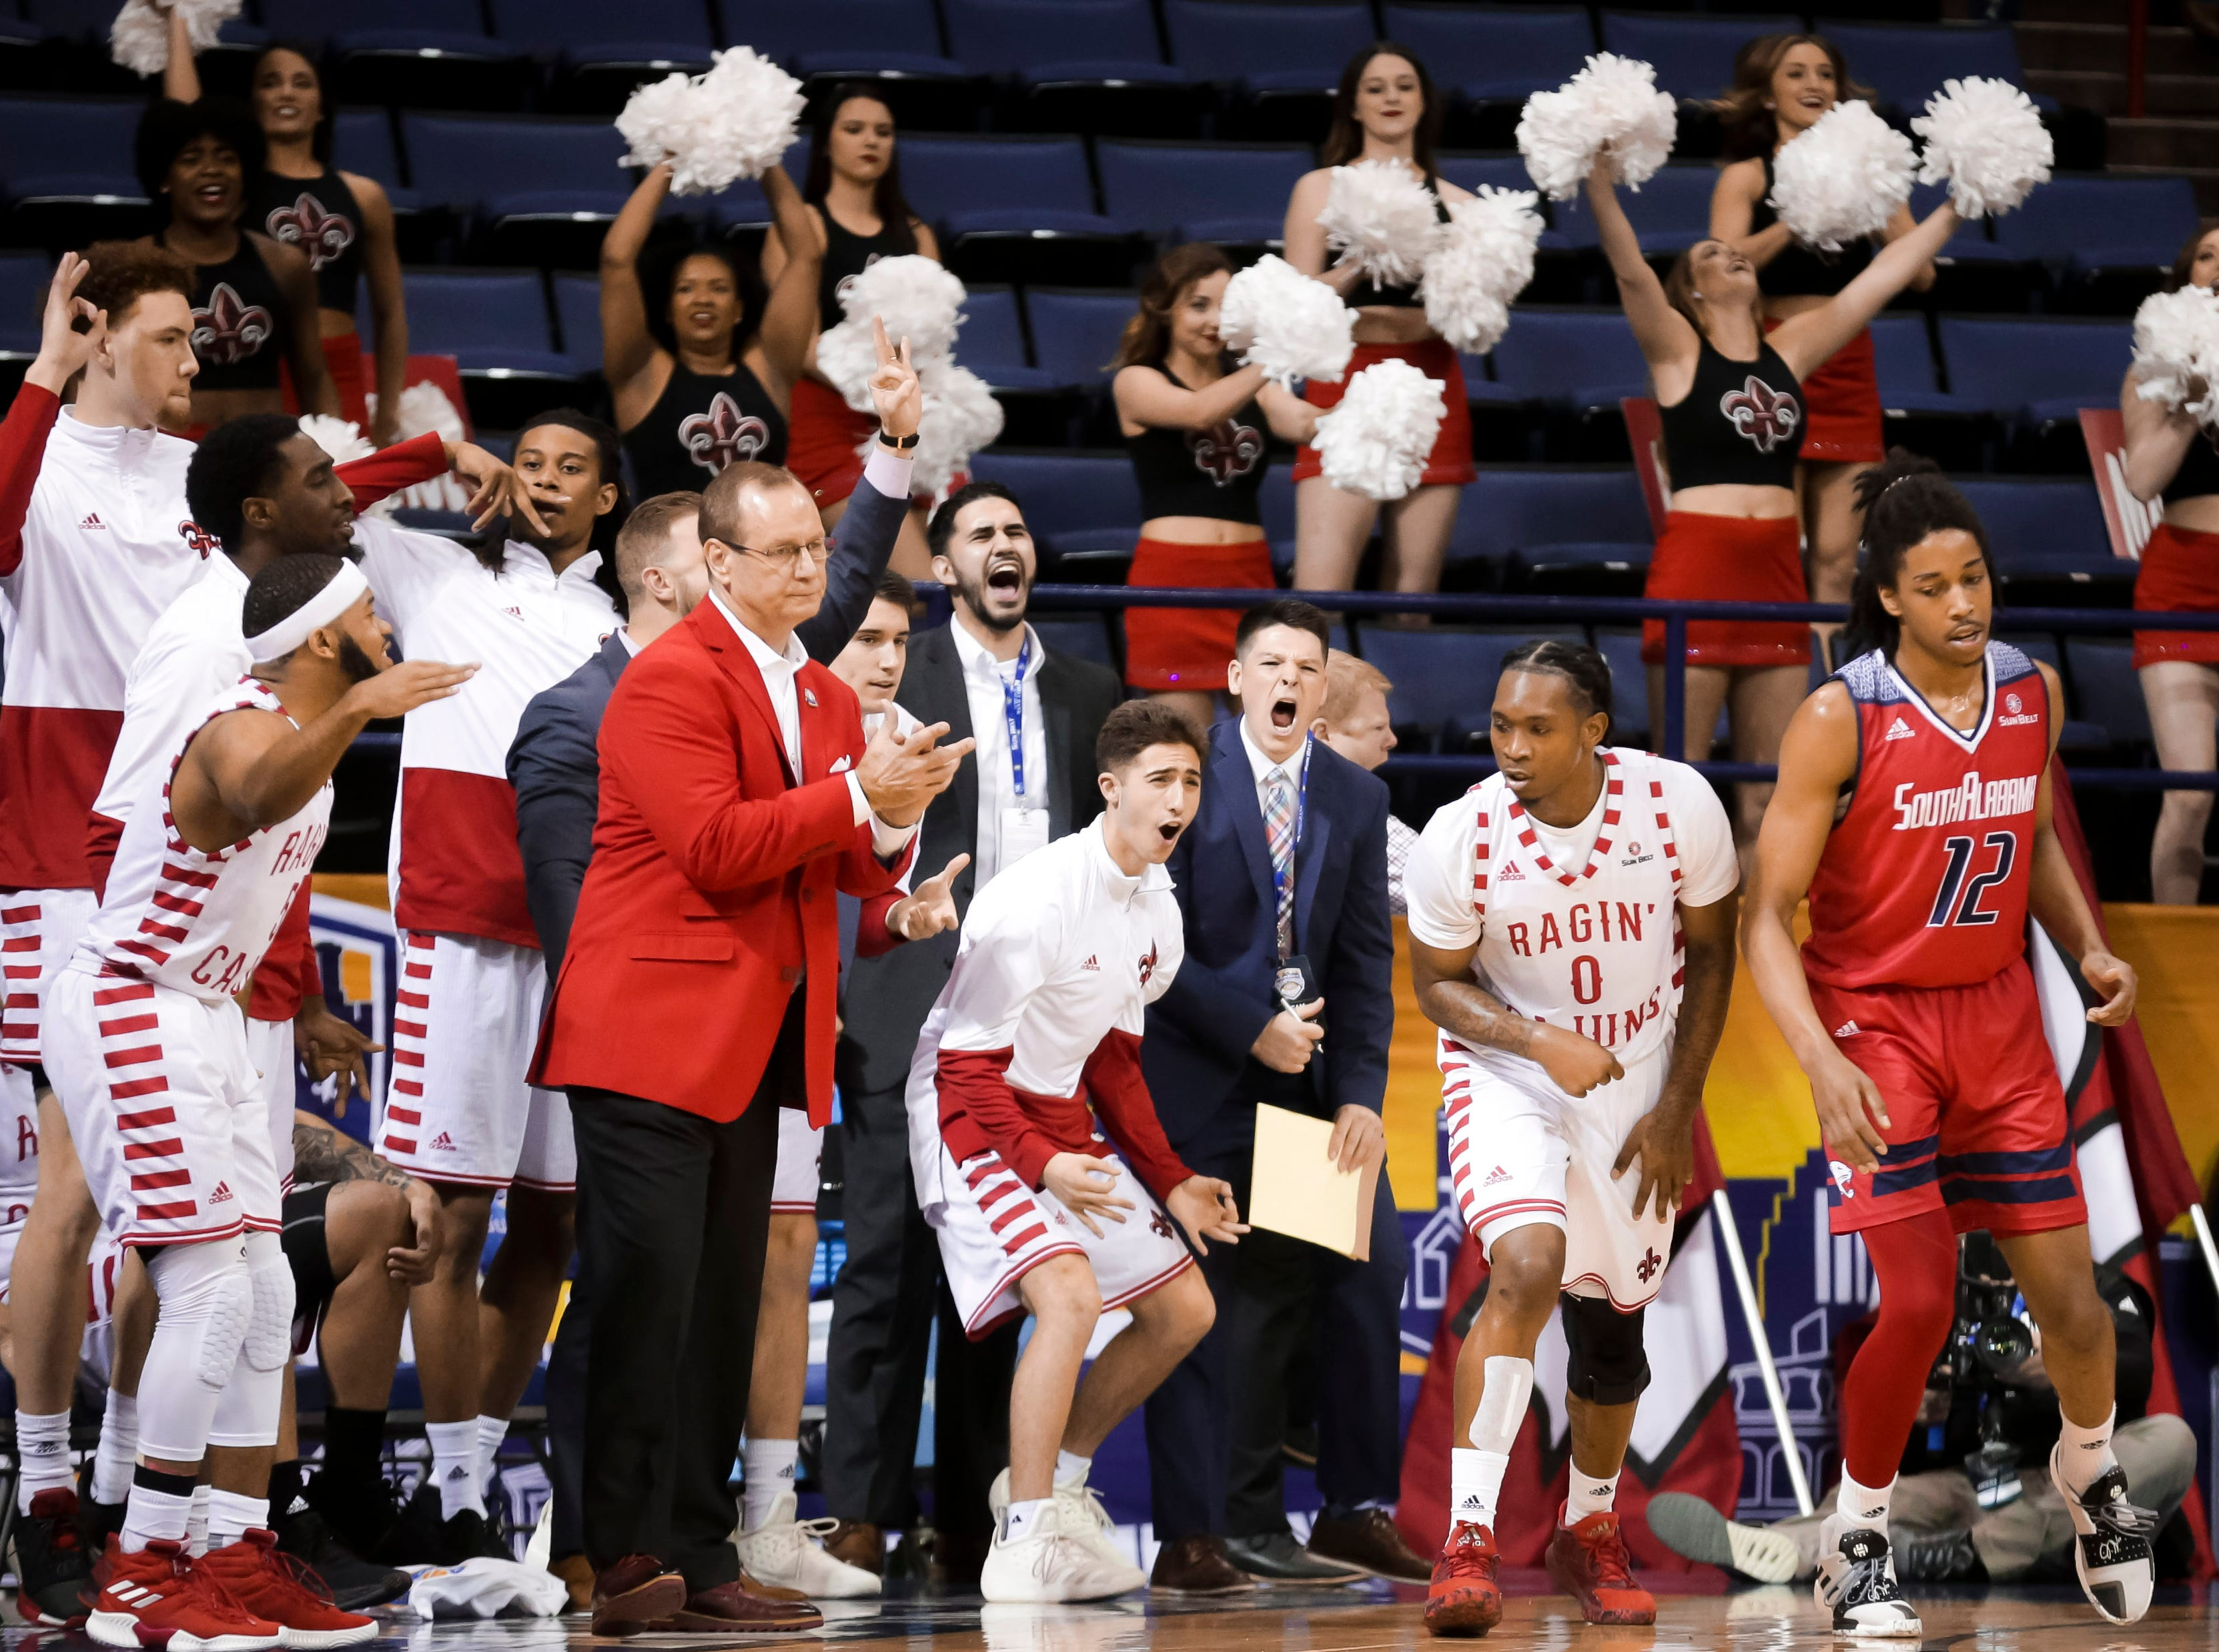 UL's bench cheers Thursday against South Alabama at the Sun Belt Men's Basketball Championship in New Orleans.